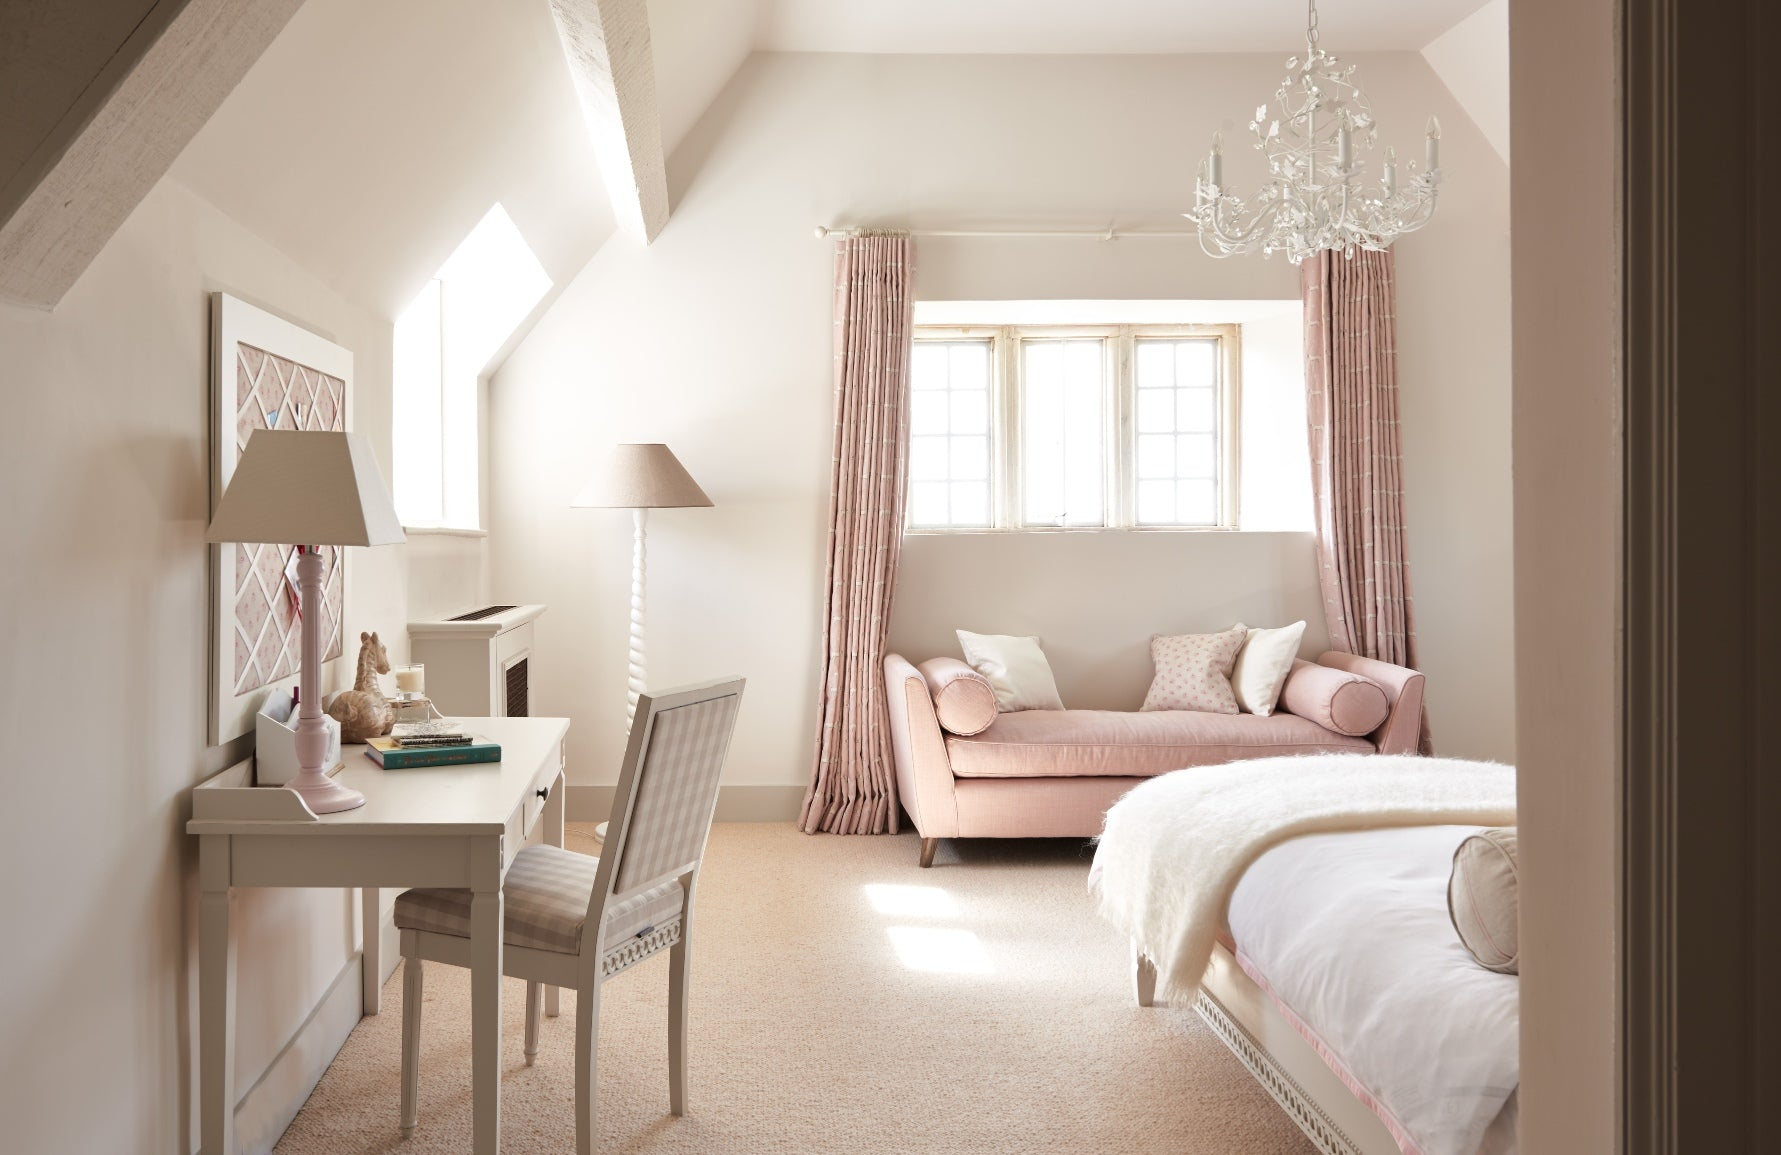 Pink and White Bedroom - Pink Bedroom Ideas - How to Decorate Rooms with Pink - LuxDeco.com Style Guide